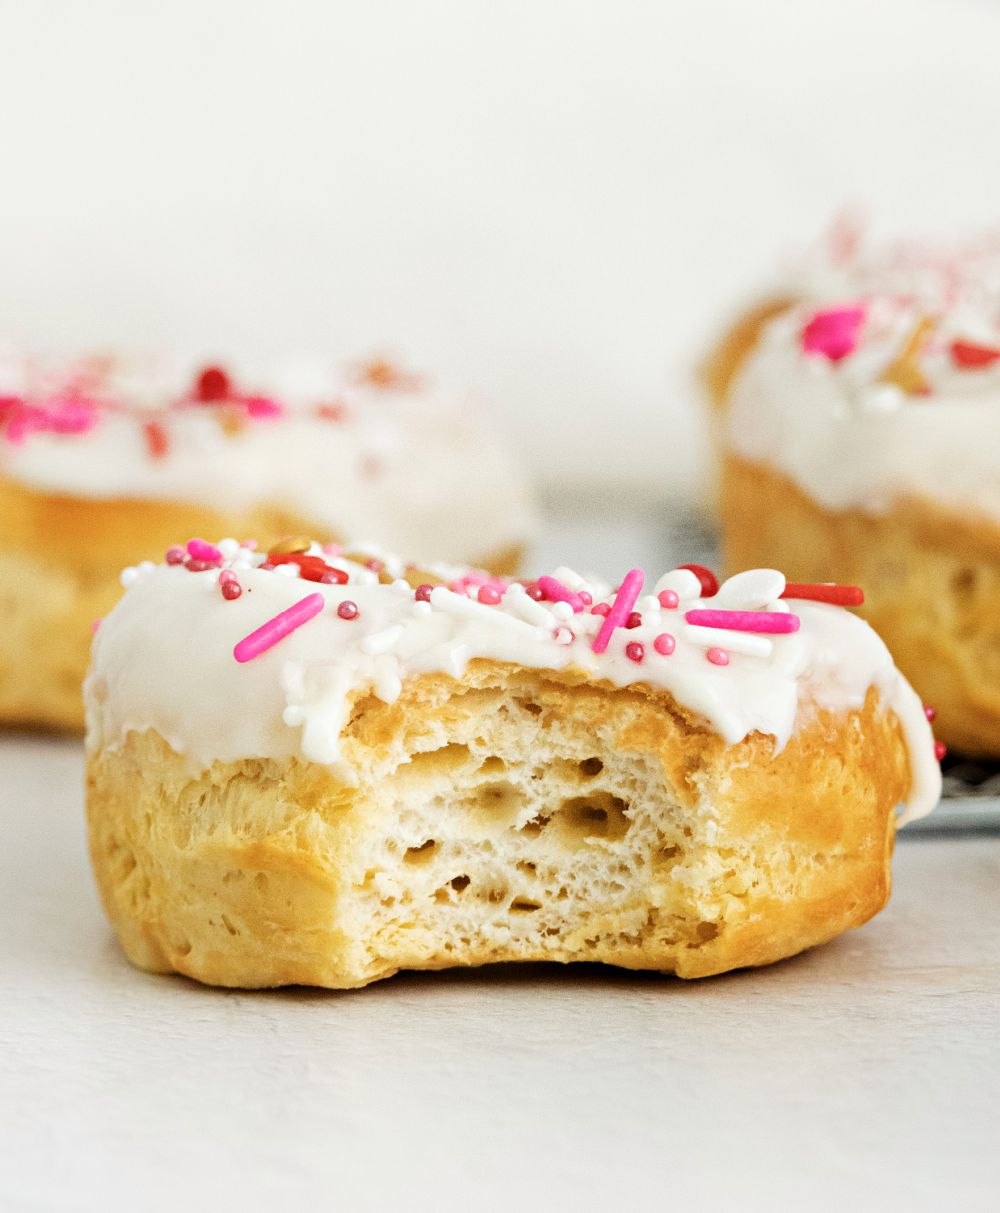 Biscuit dough used to make donuts in the air fryer